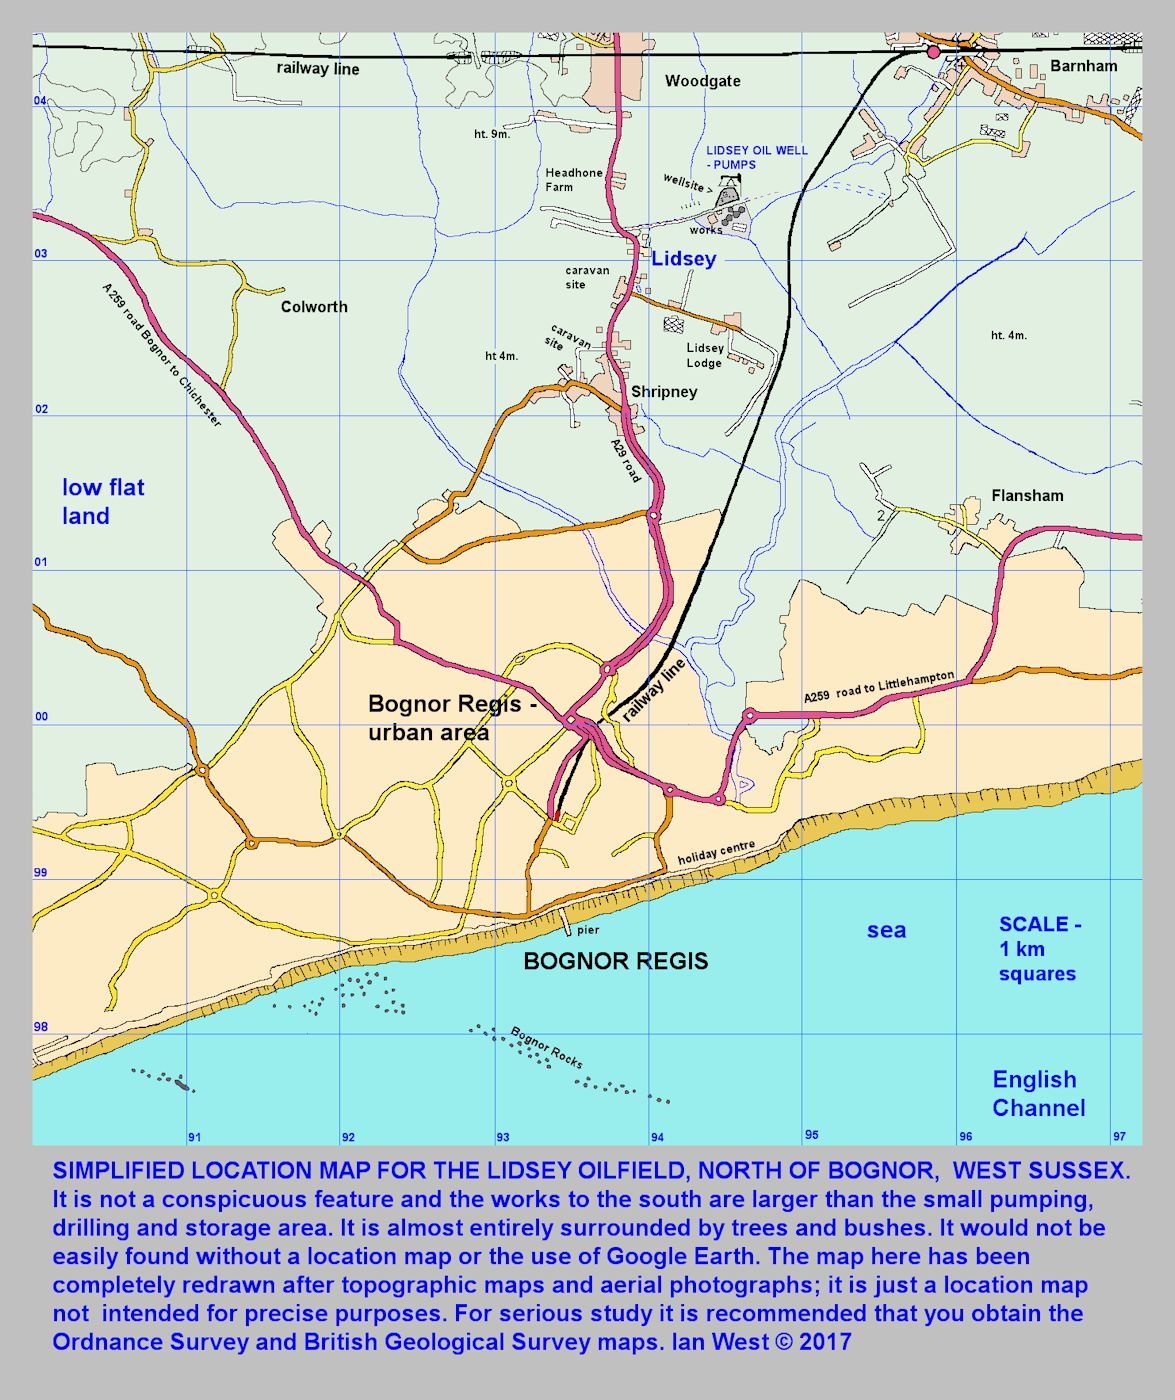 A map showing the location of the Lidsey oil well site, a short distance north of Bognor, West Sussex